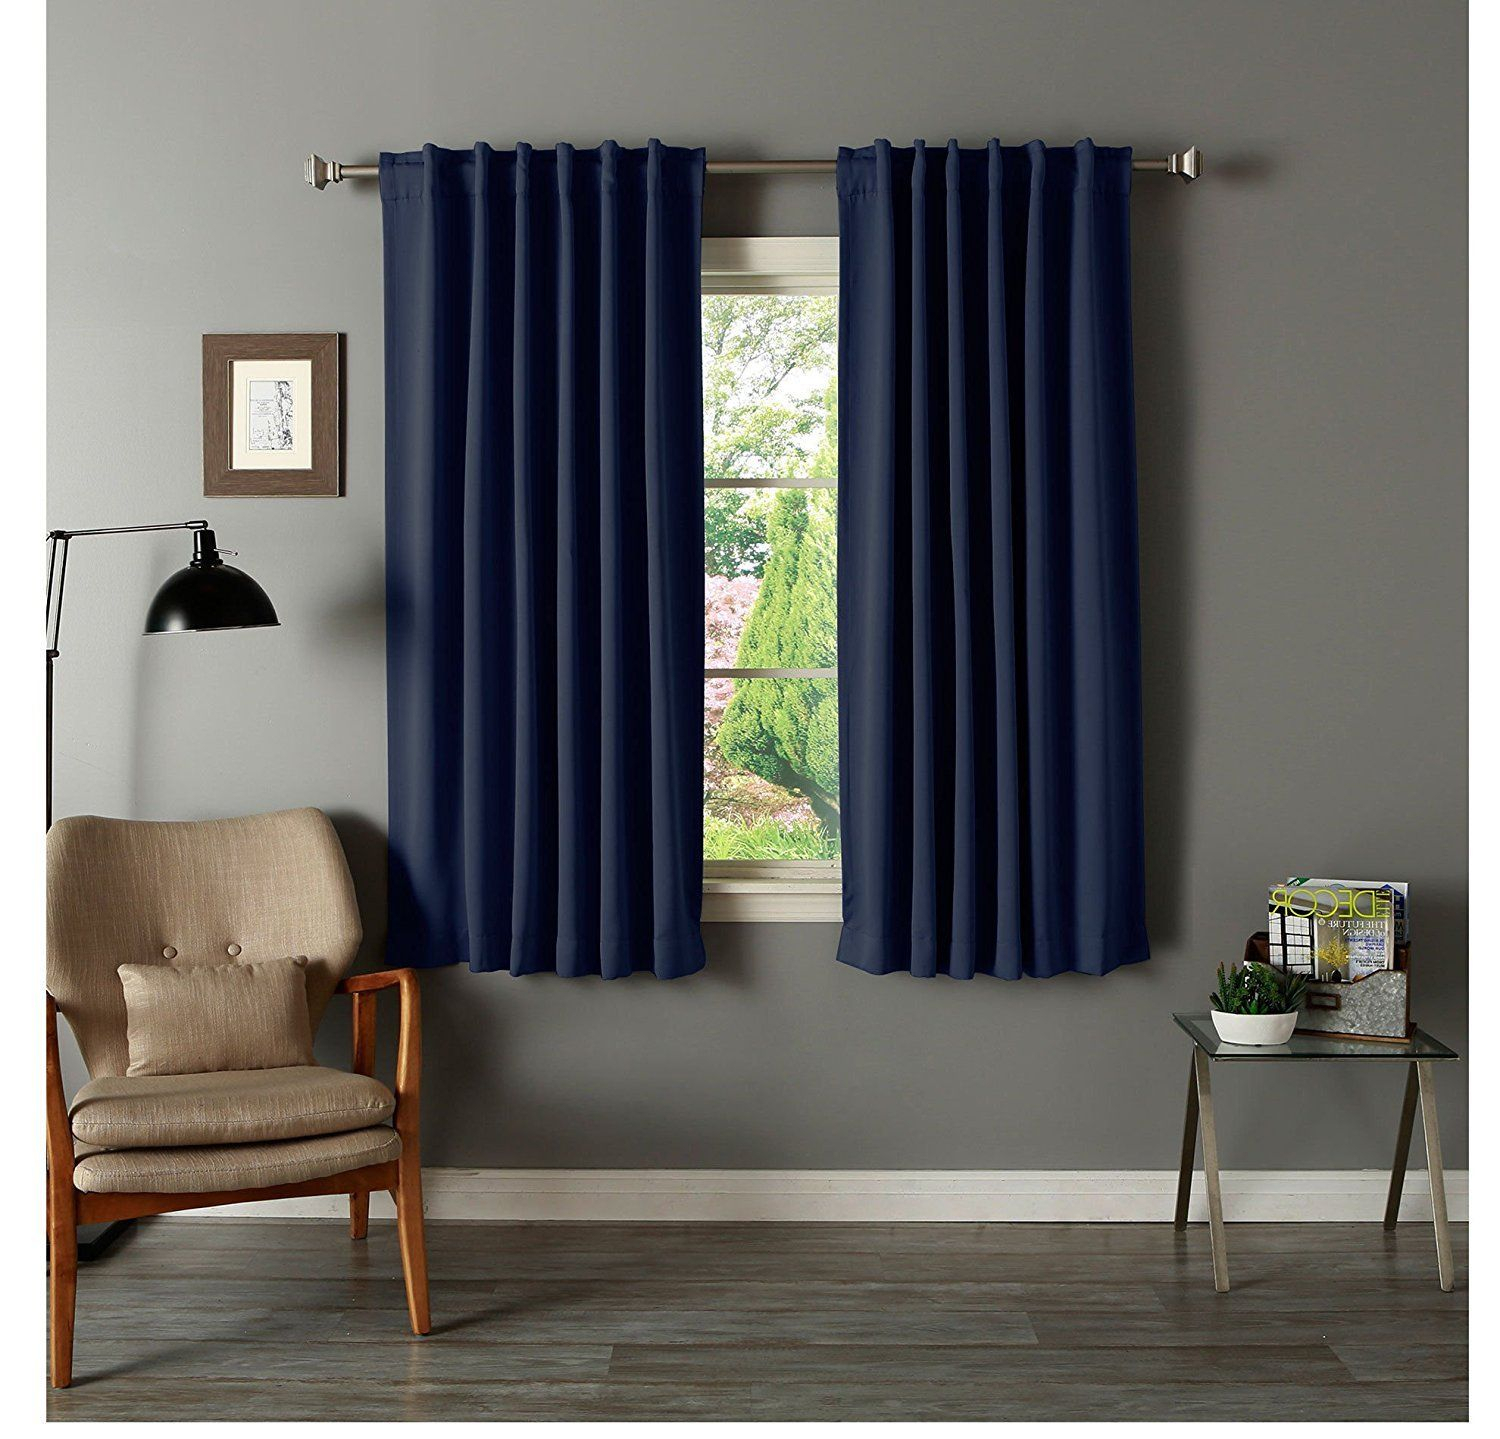 63 Inch Girls Navy Solid Color Blackout Curtain Panel Pair With Regard To Thermal Rod Pocket Blackout Curtain Panel Pairs (Gallery 6 of 30)